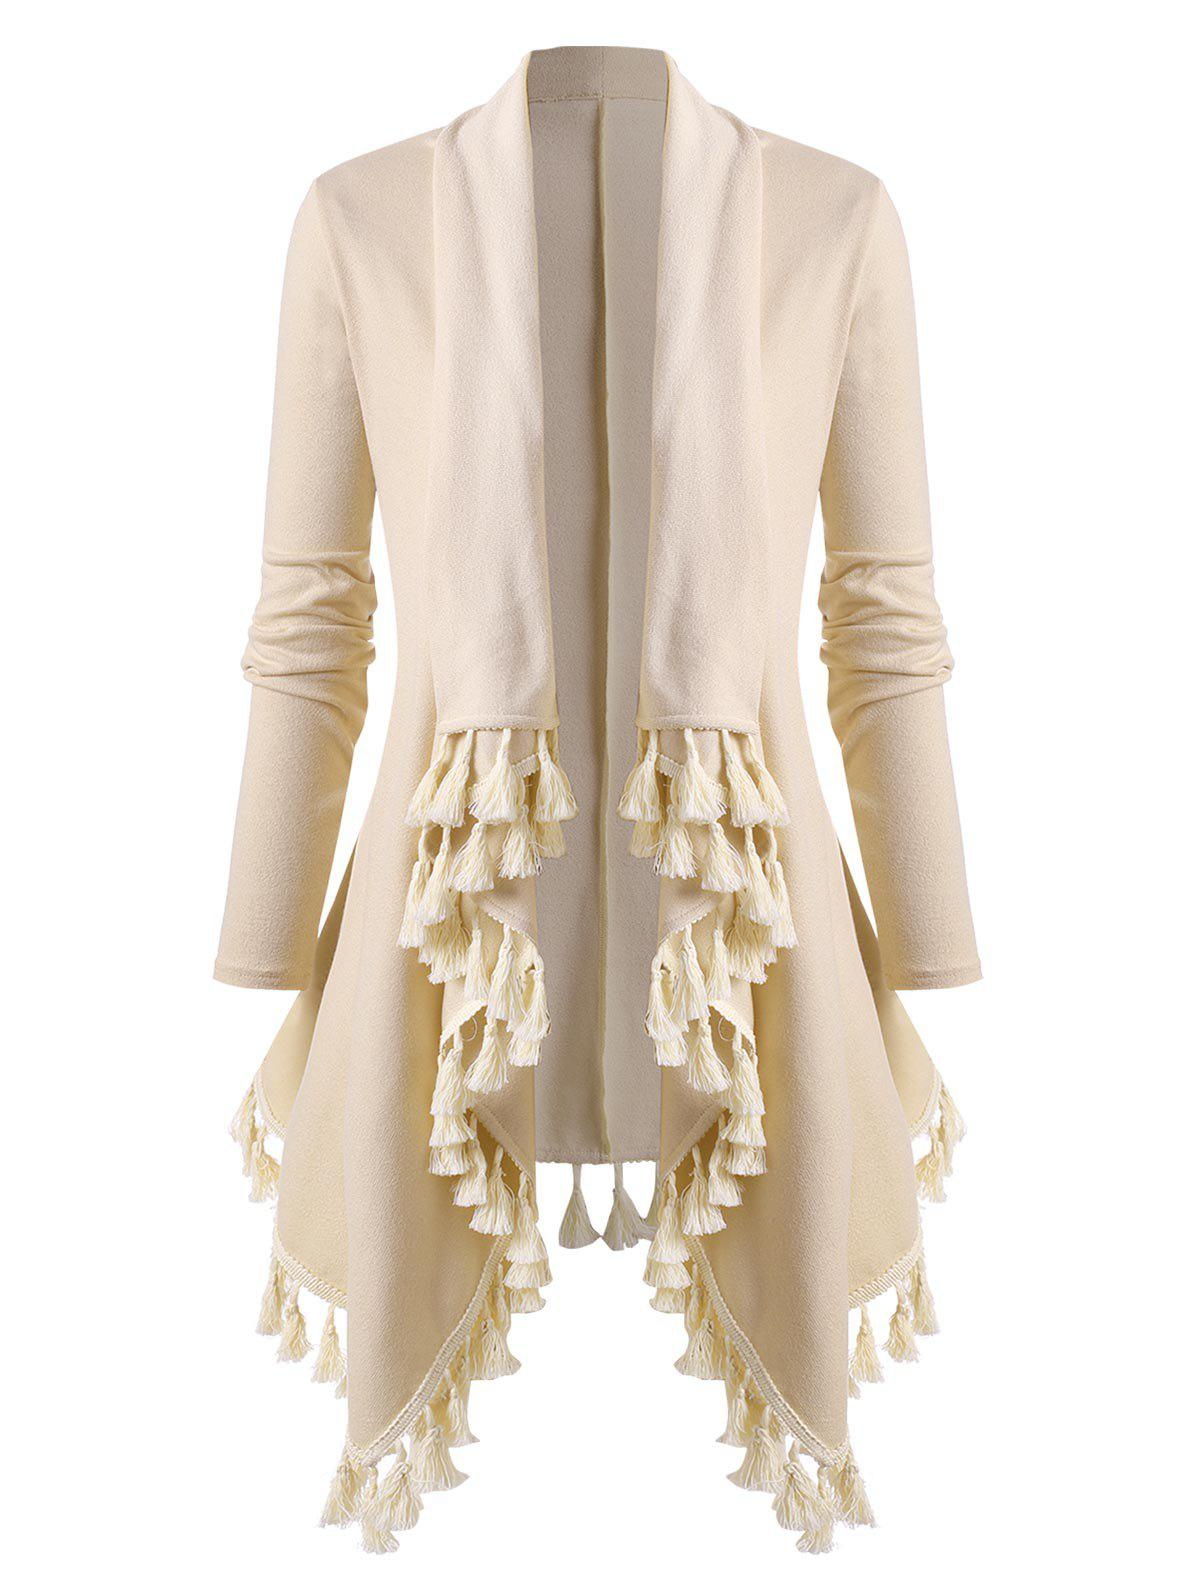 Plus Size Tassel Draped Open Waterfall Tunic Cardigan - LIGHT YELLOW 4X